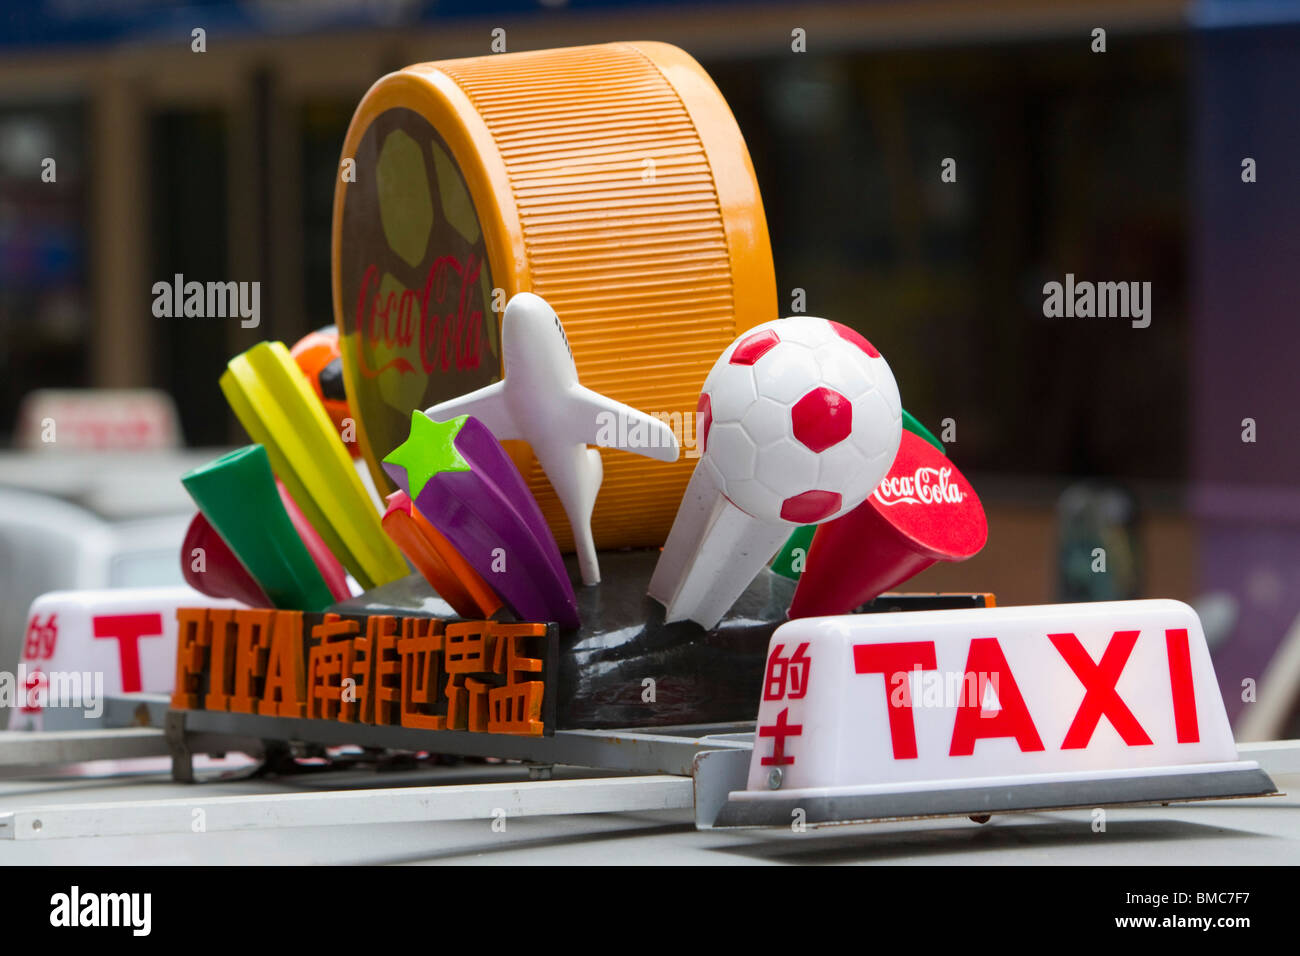 Taxi For Hire Stock Photos Amp Taxi For Hire Stock Images